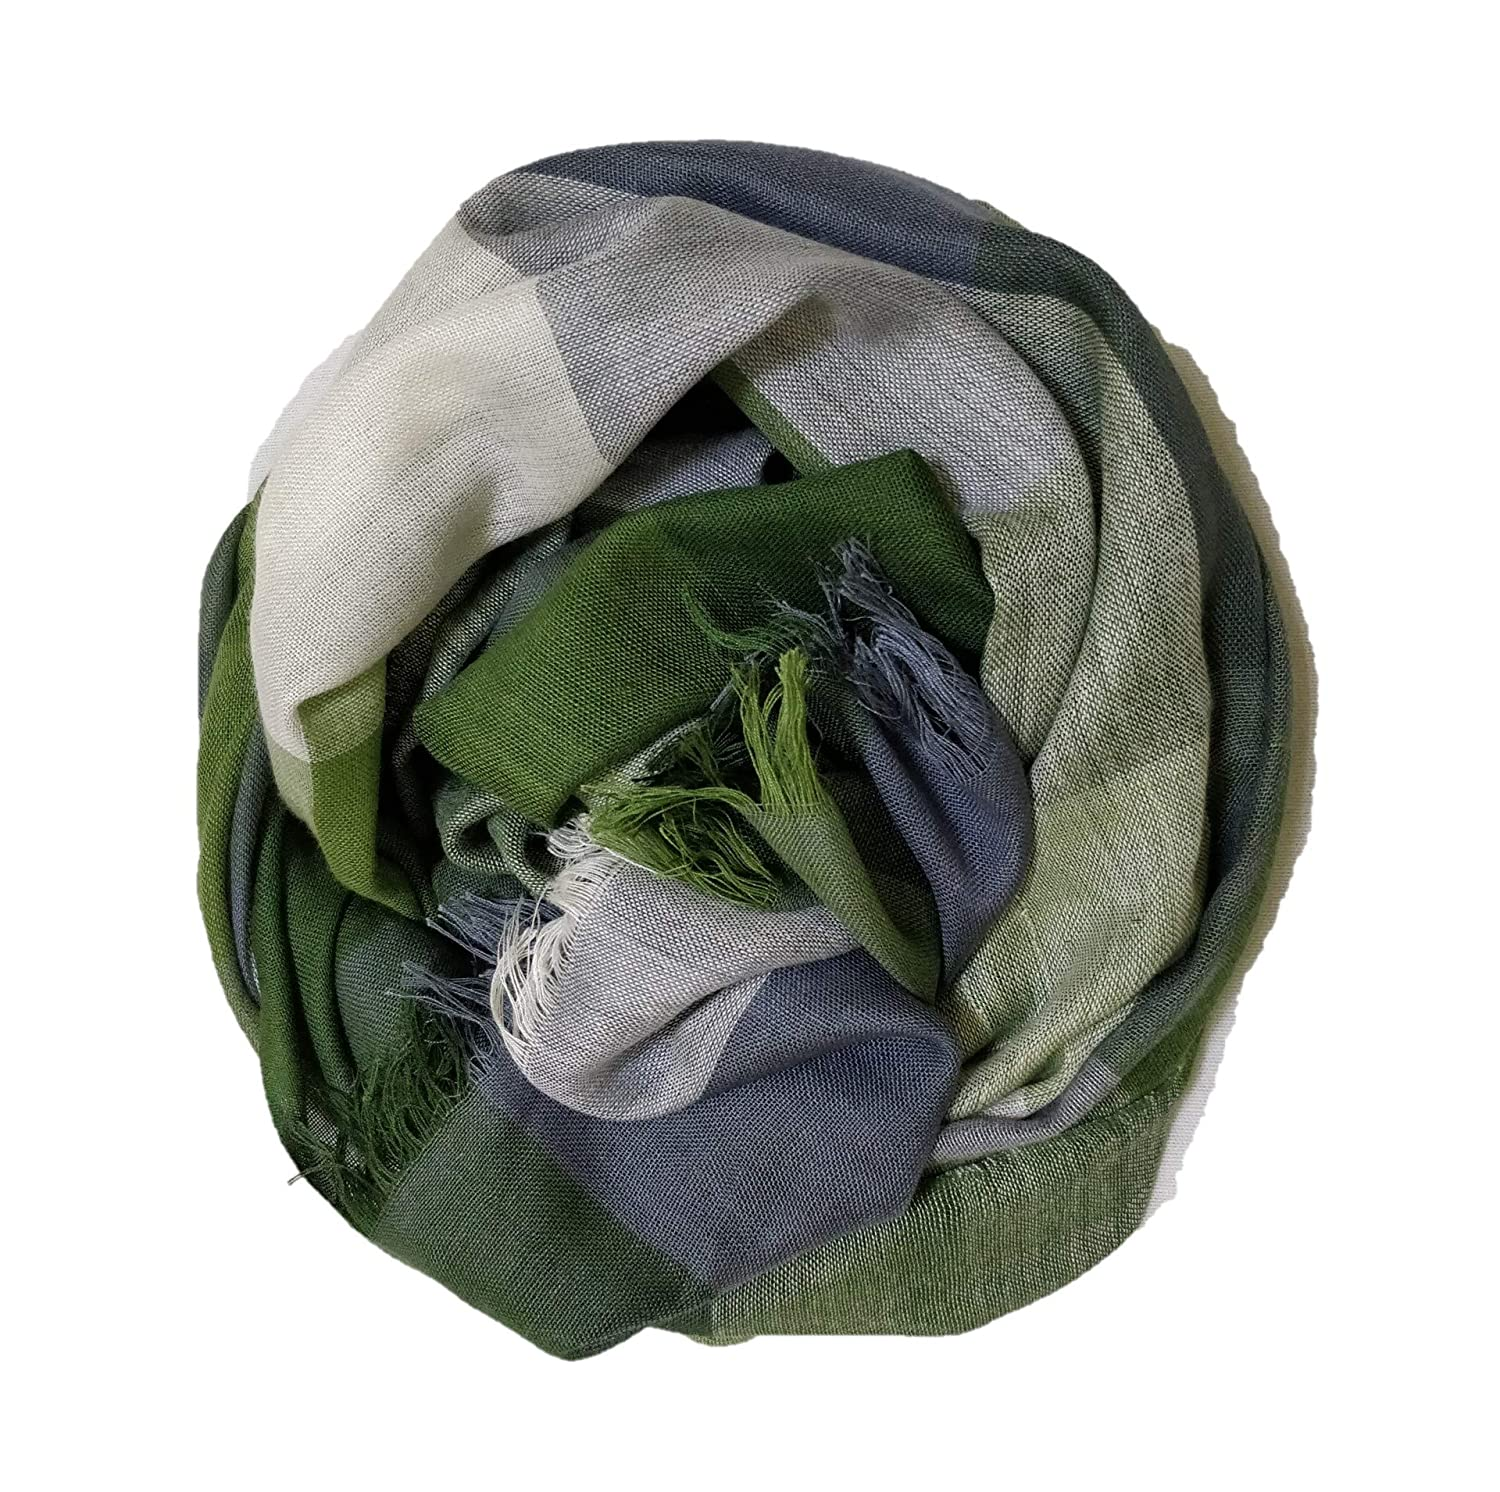 Soft & a Lightweight Women's Trendy In the Shades of Green Grey Checks Viscose Scarf Stole for All Seasons with Fringes.